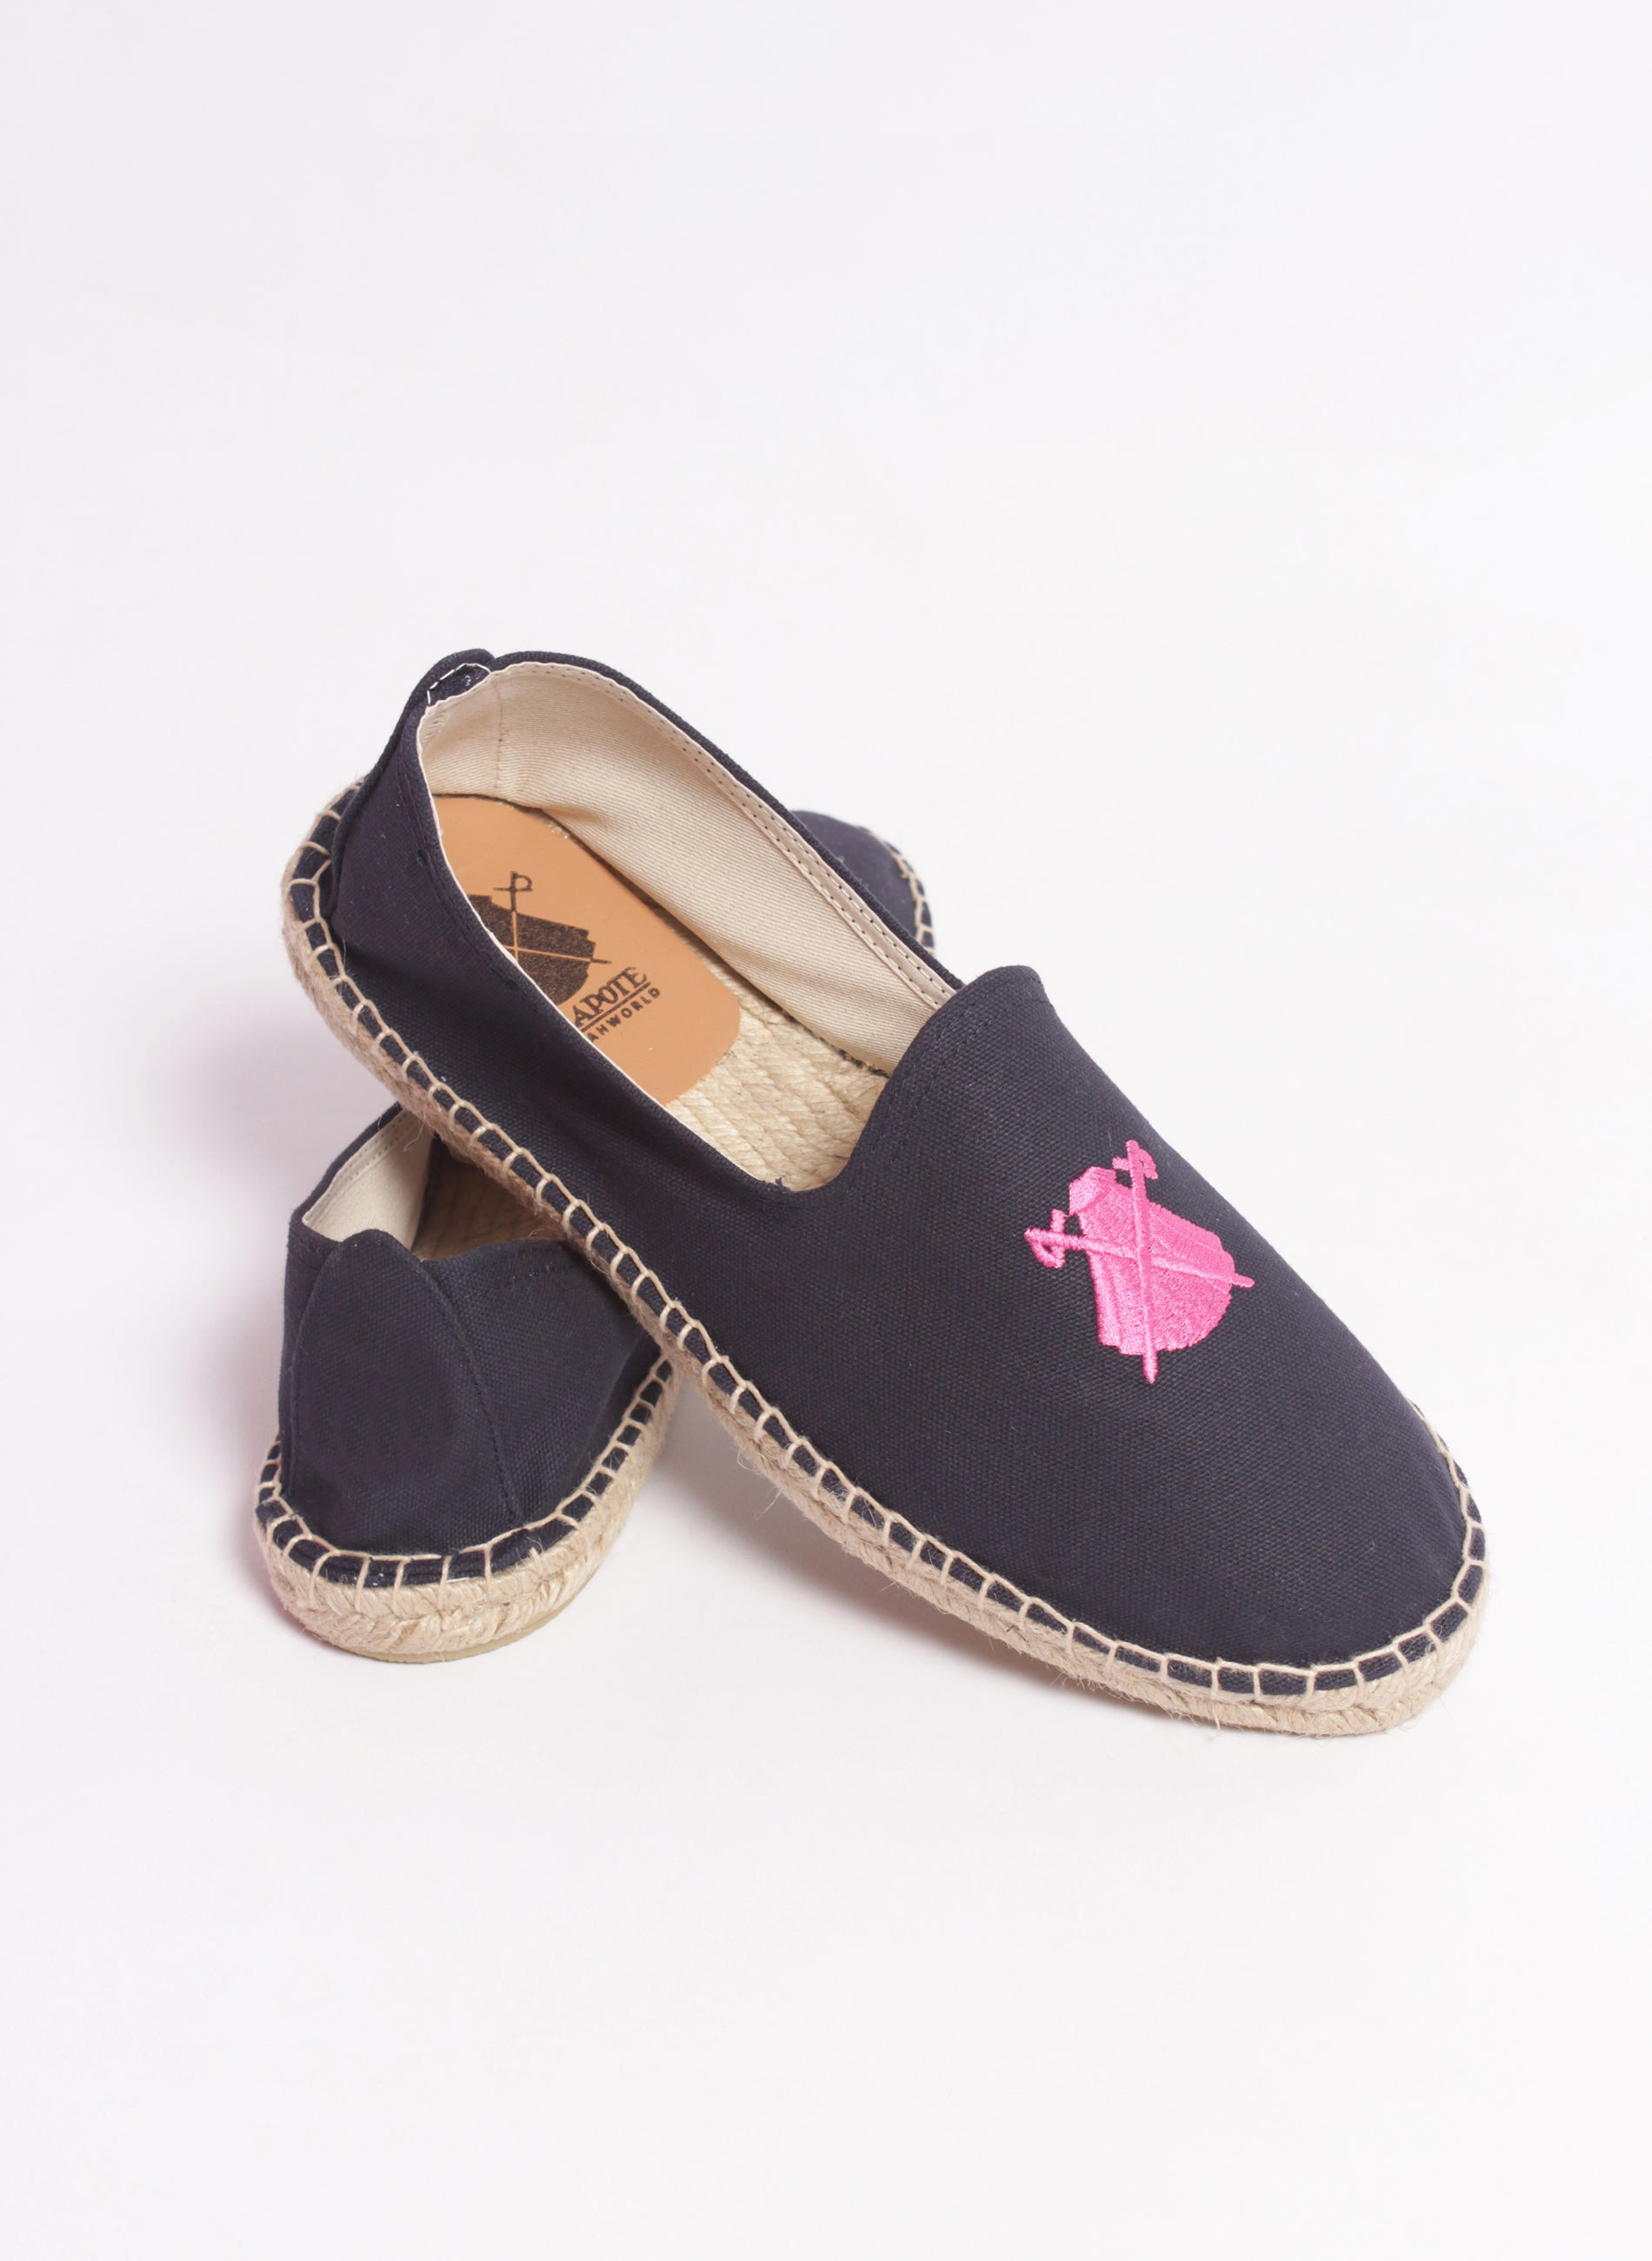 Espadrilles Man Navy Blue Embroidered Pink Cape